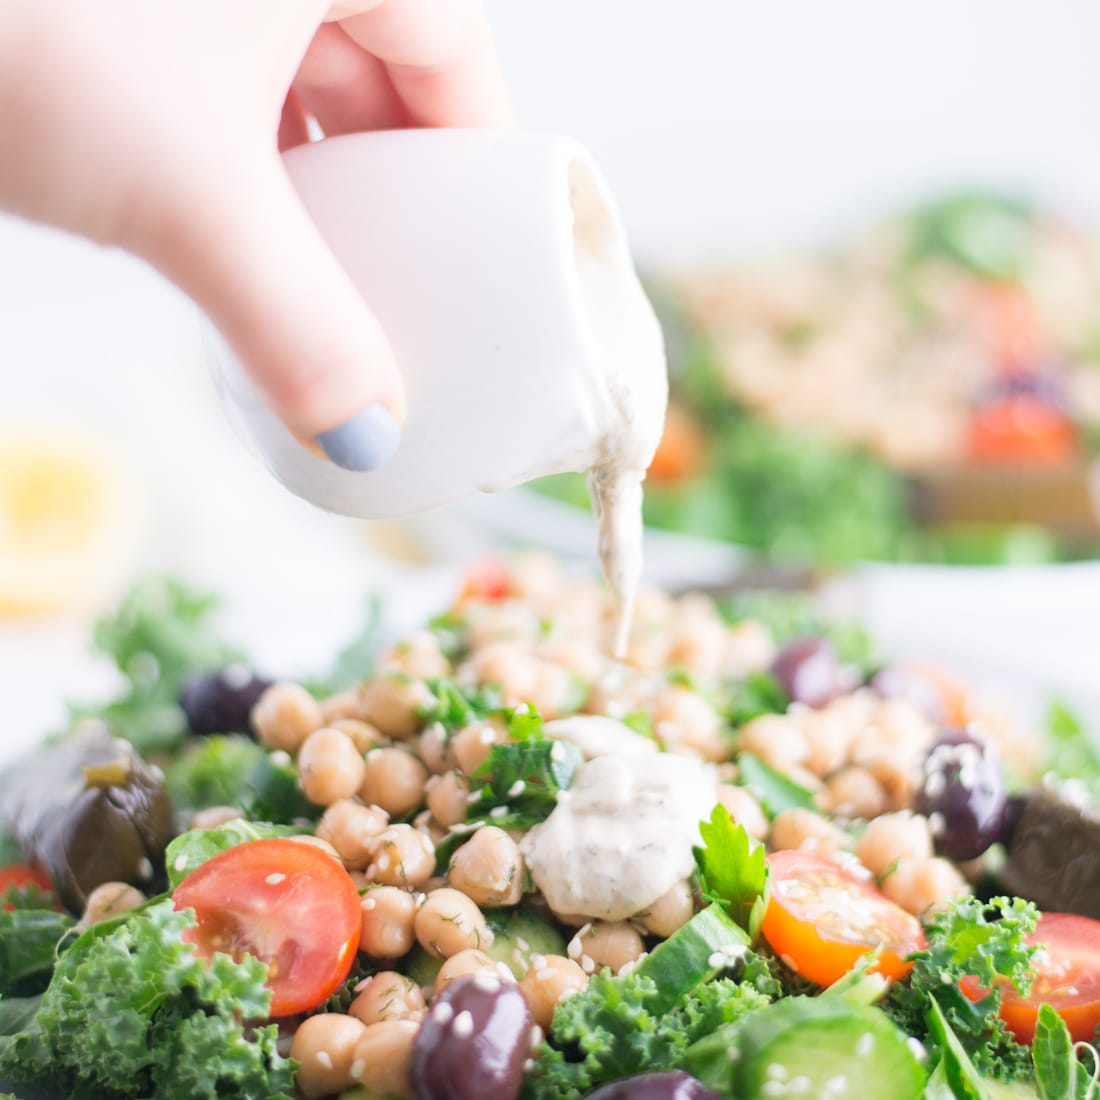 hand pouring dressing on vegan salad